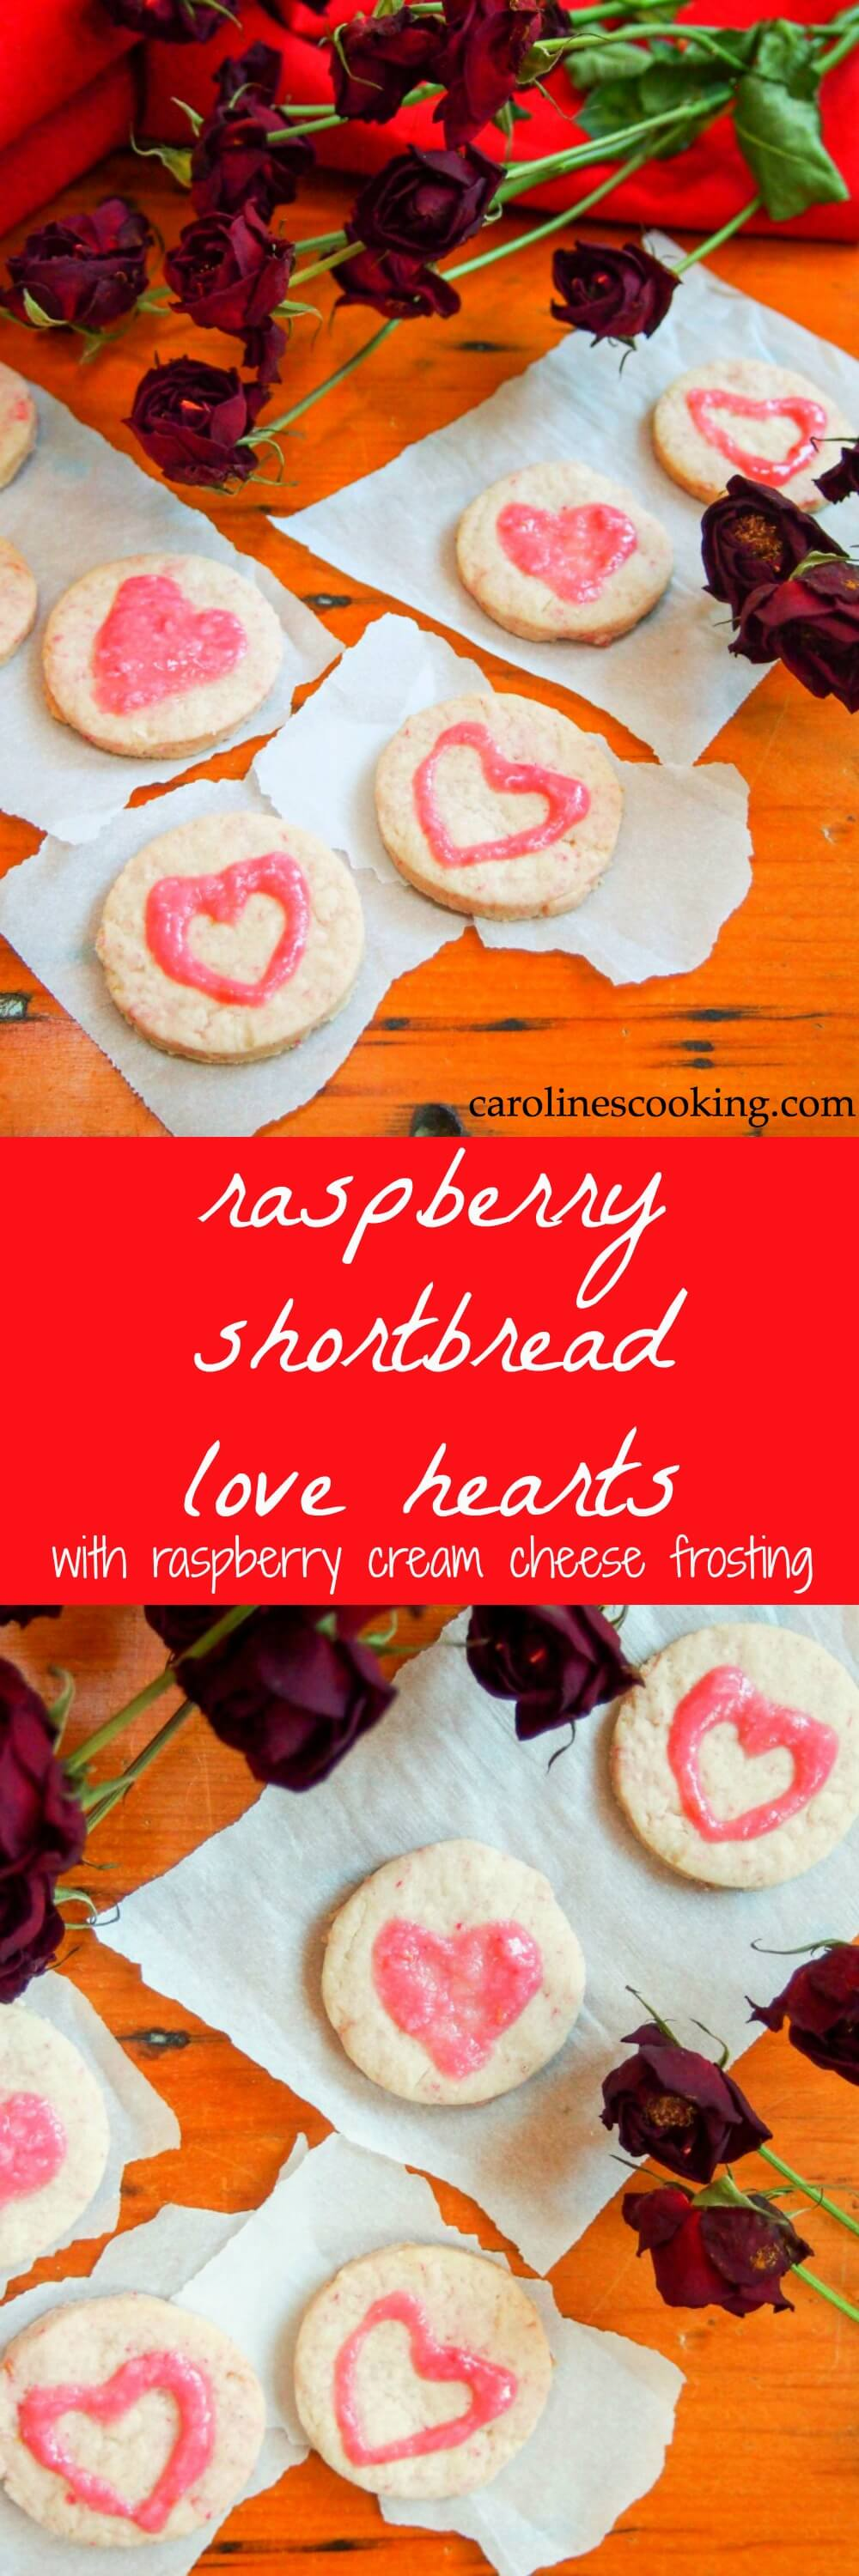 raspberry shortbread love hearts with raspberry cream cheese frosting - a deliciously buttery, raspberry-flavored cookie perfect for Valentine's day, or any excuse they're that good. Naturally colored, they'll win your heart.